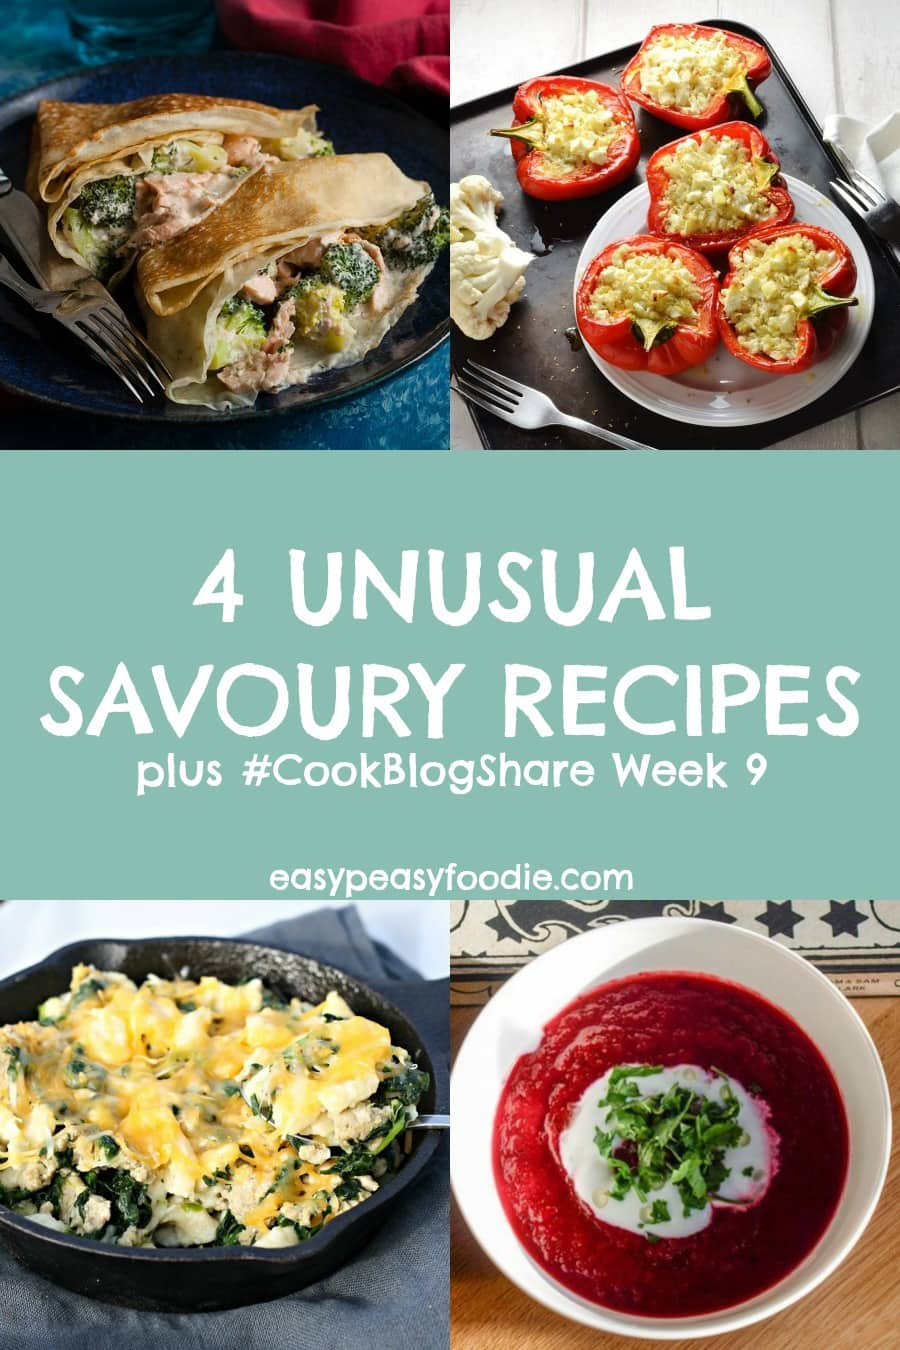 Fancy something a little bit different for your dinner? Then why not try out one of these 4 Unusual Savoury Recipes – each a little twist on a classic. Plus find the linky for #CookBlogShare Week 9. #savouryrecipes #unusualrecipes #easyrecipes #midweekmeals #familydinners #pancakes #savourypancakes #stuffedpeppers #cauliflowerrice #spaetzle #healthymacncheese #germanpasta #beetrootsoup #easypeasyfoodie